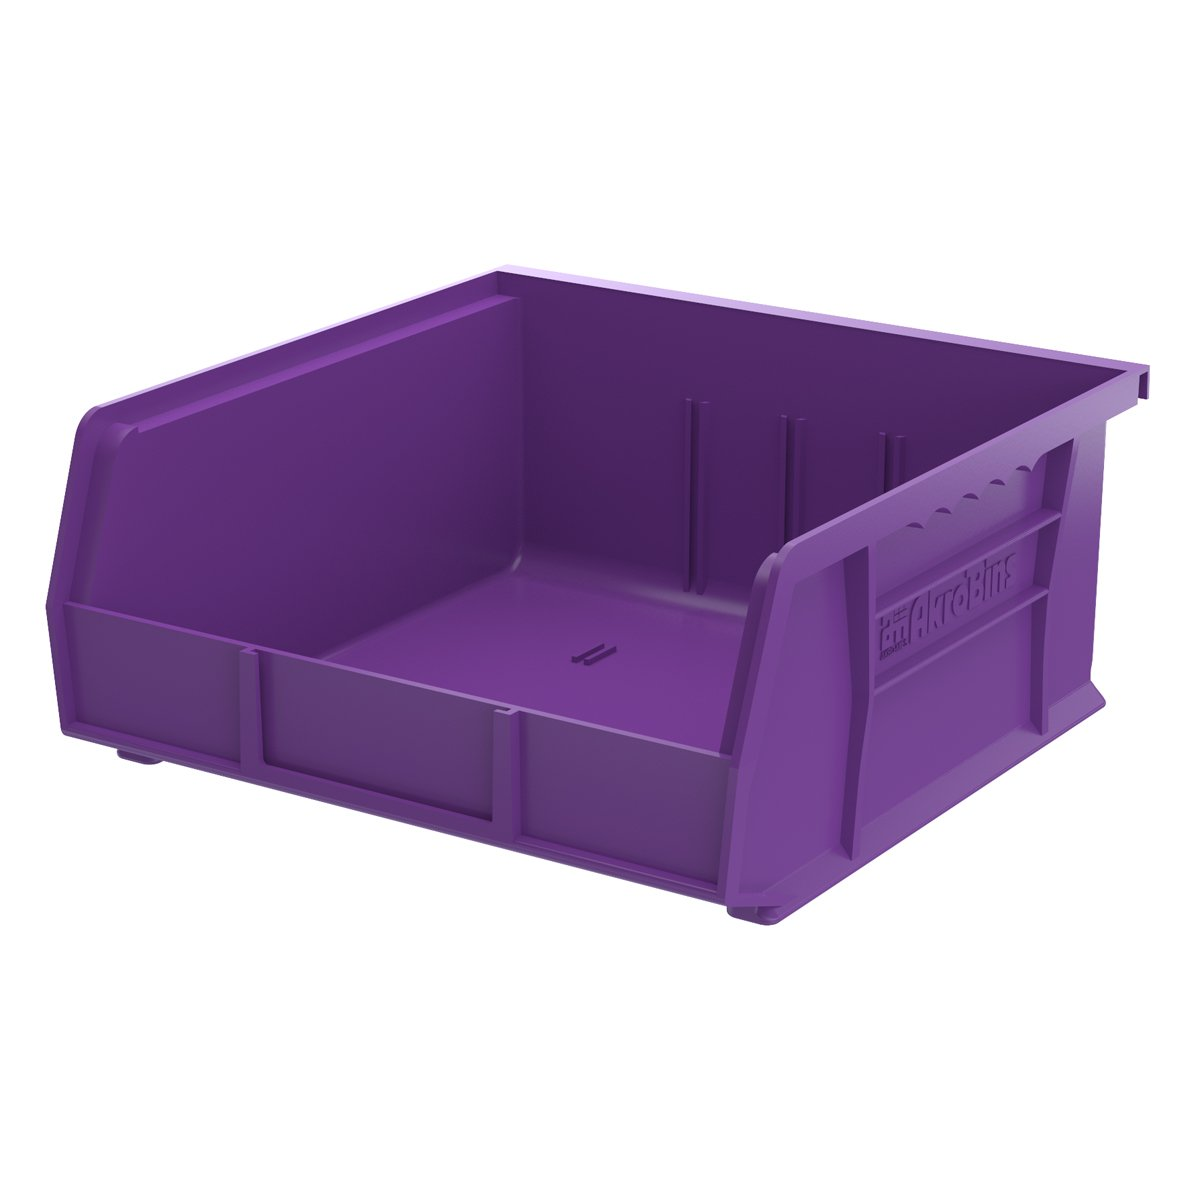 Akro-Mils 30235 Plastic Storage Stacking Hanging Akro Bin,11-Inch by 10-7/8-Inch by 5-Inch , Purple, 6-Pack